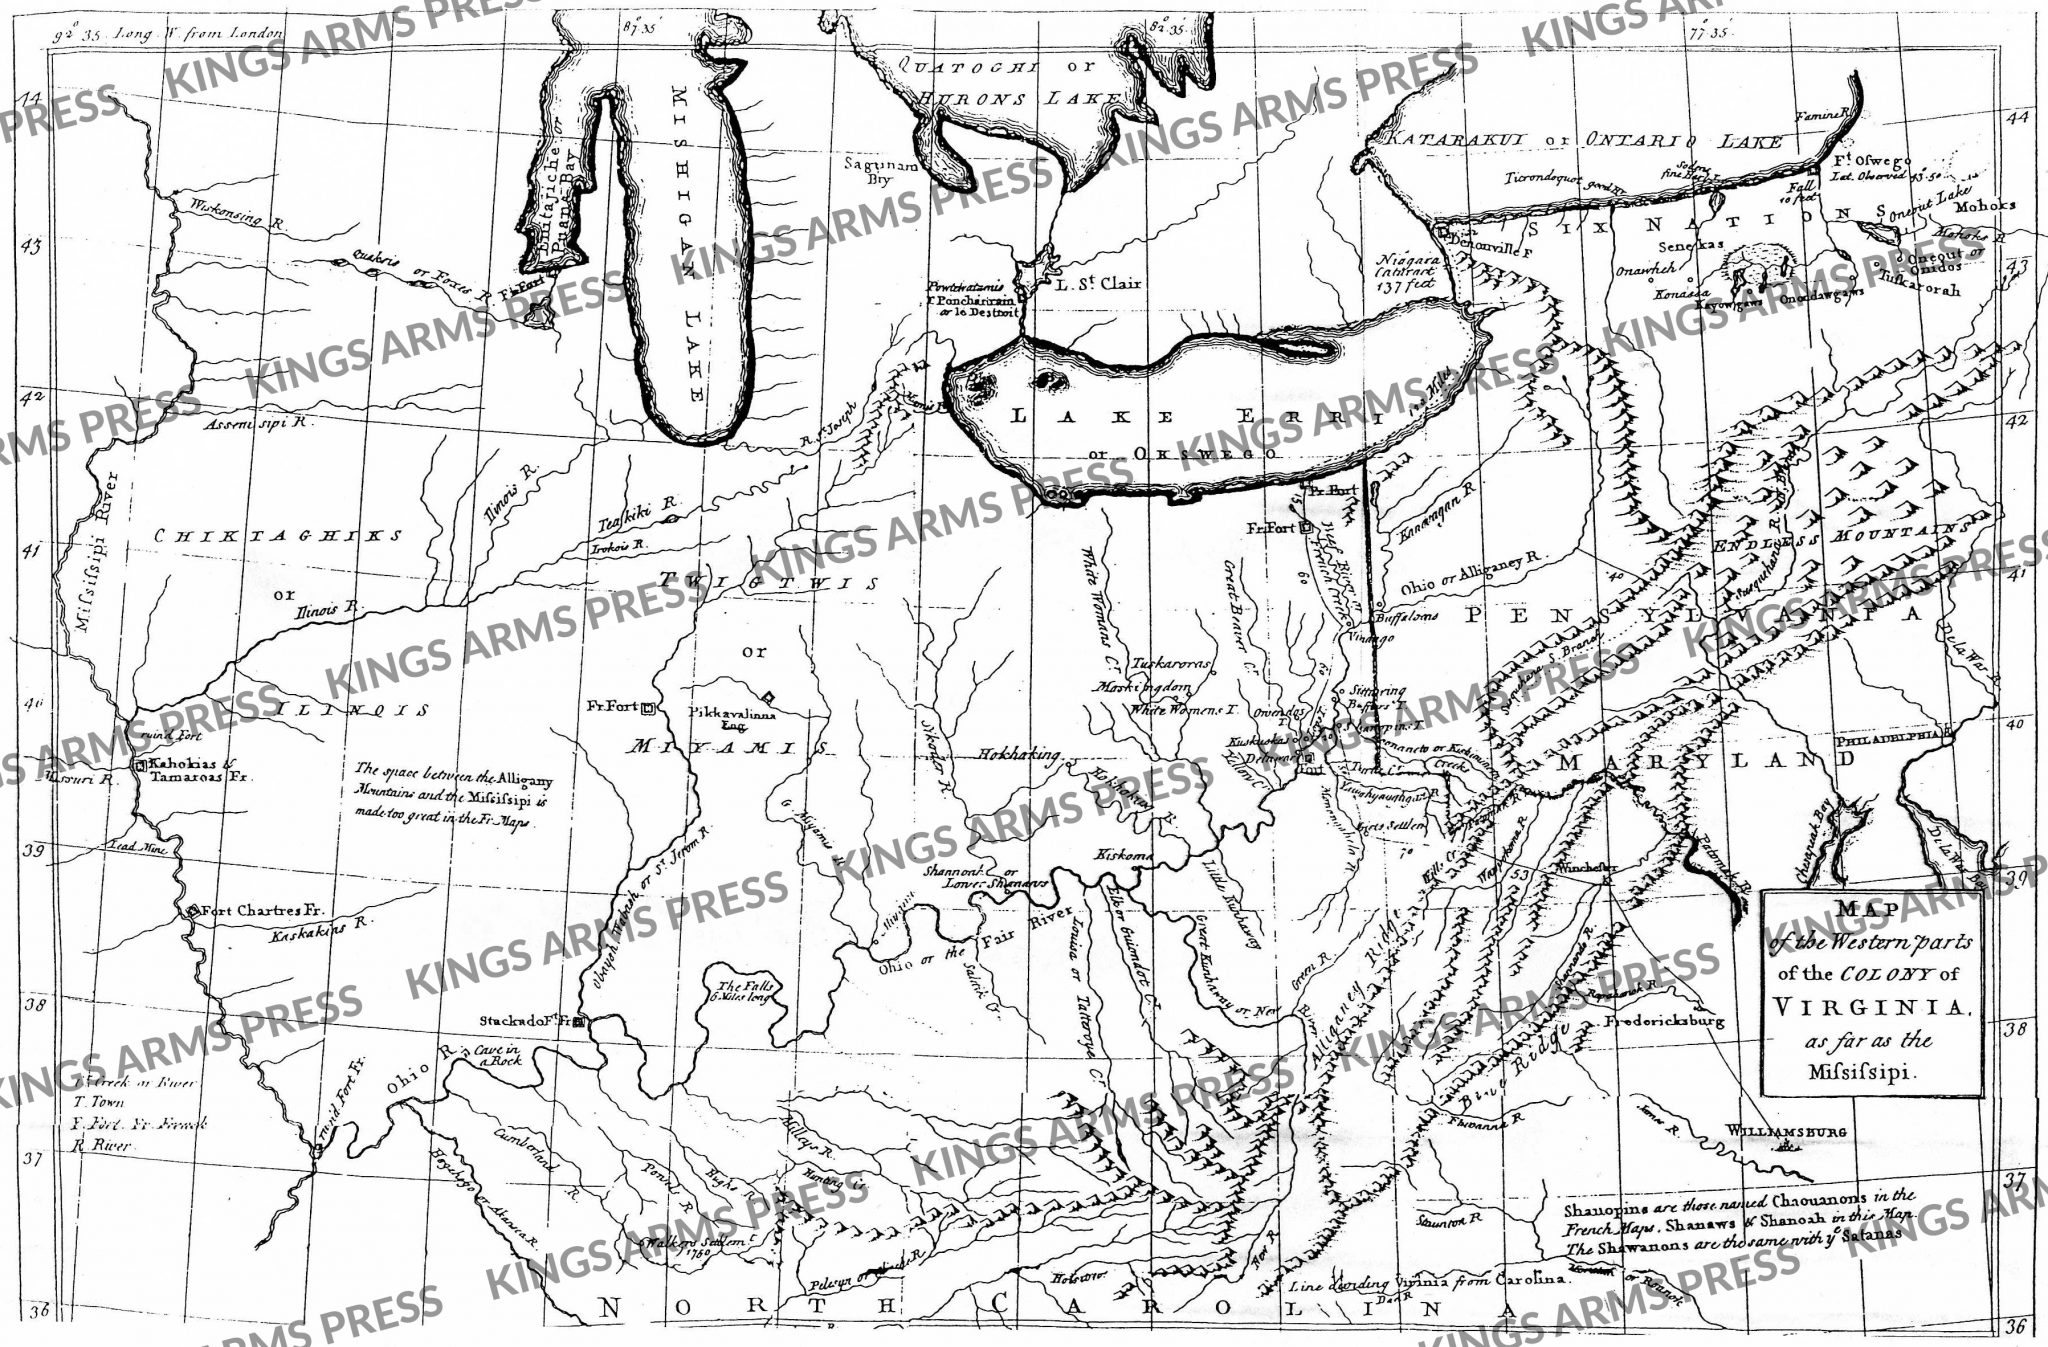 Map of the Western Parts of the Colony of Virginia as Far as the Mississippi